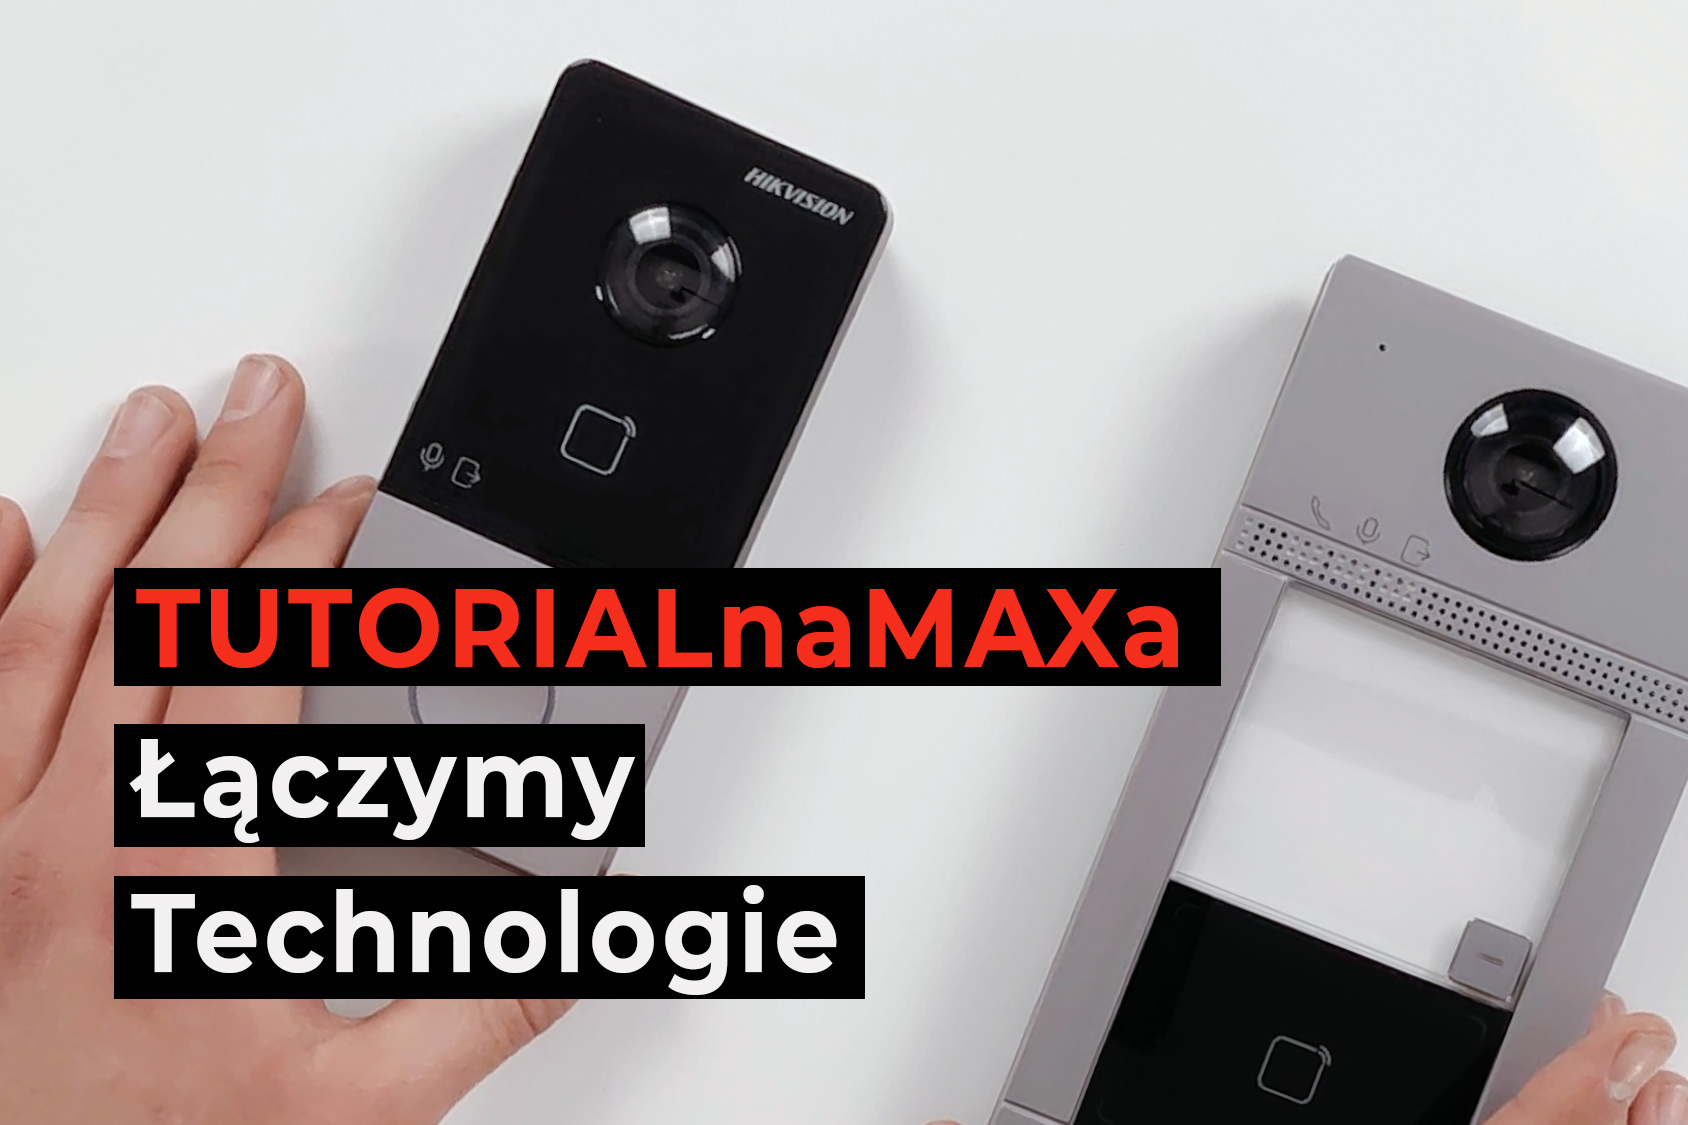 Tutorial Na Maxa - seria na Youtube